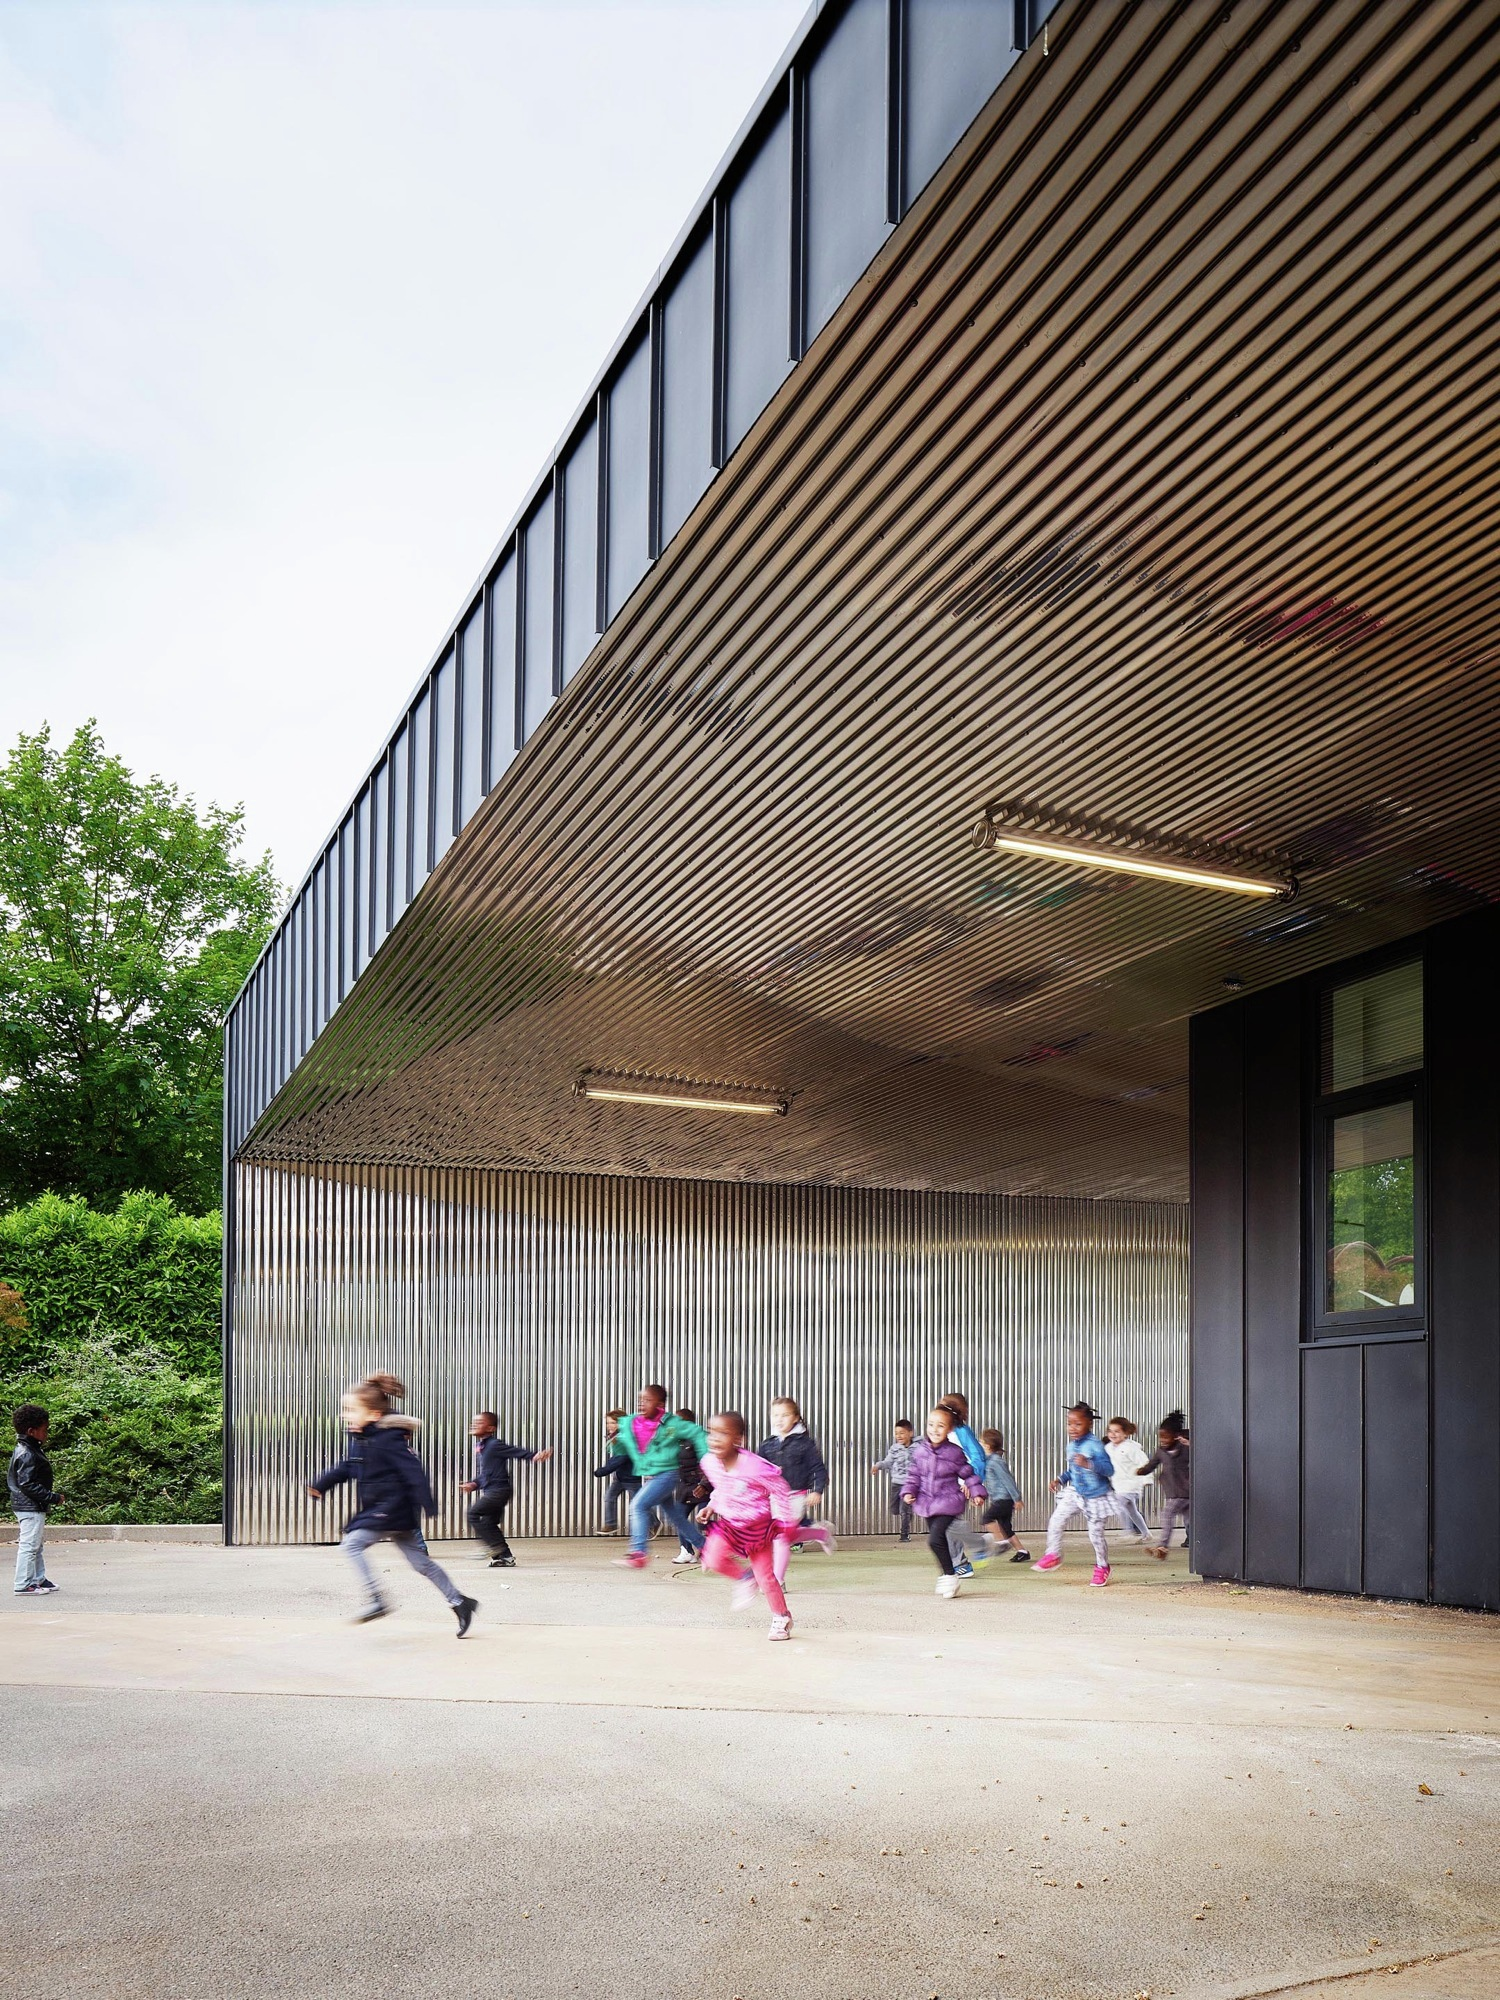 architecture nursery extension ville france graal buildings mantes archdaily education foessel david kindergarten educational schools projects arch metal courtesy centre